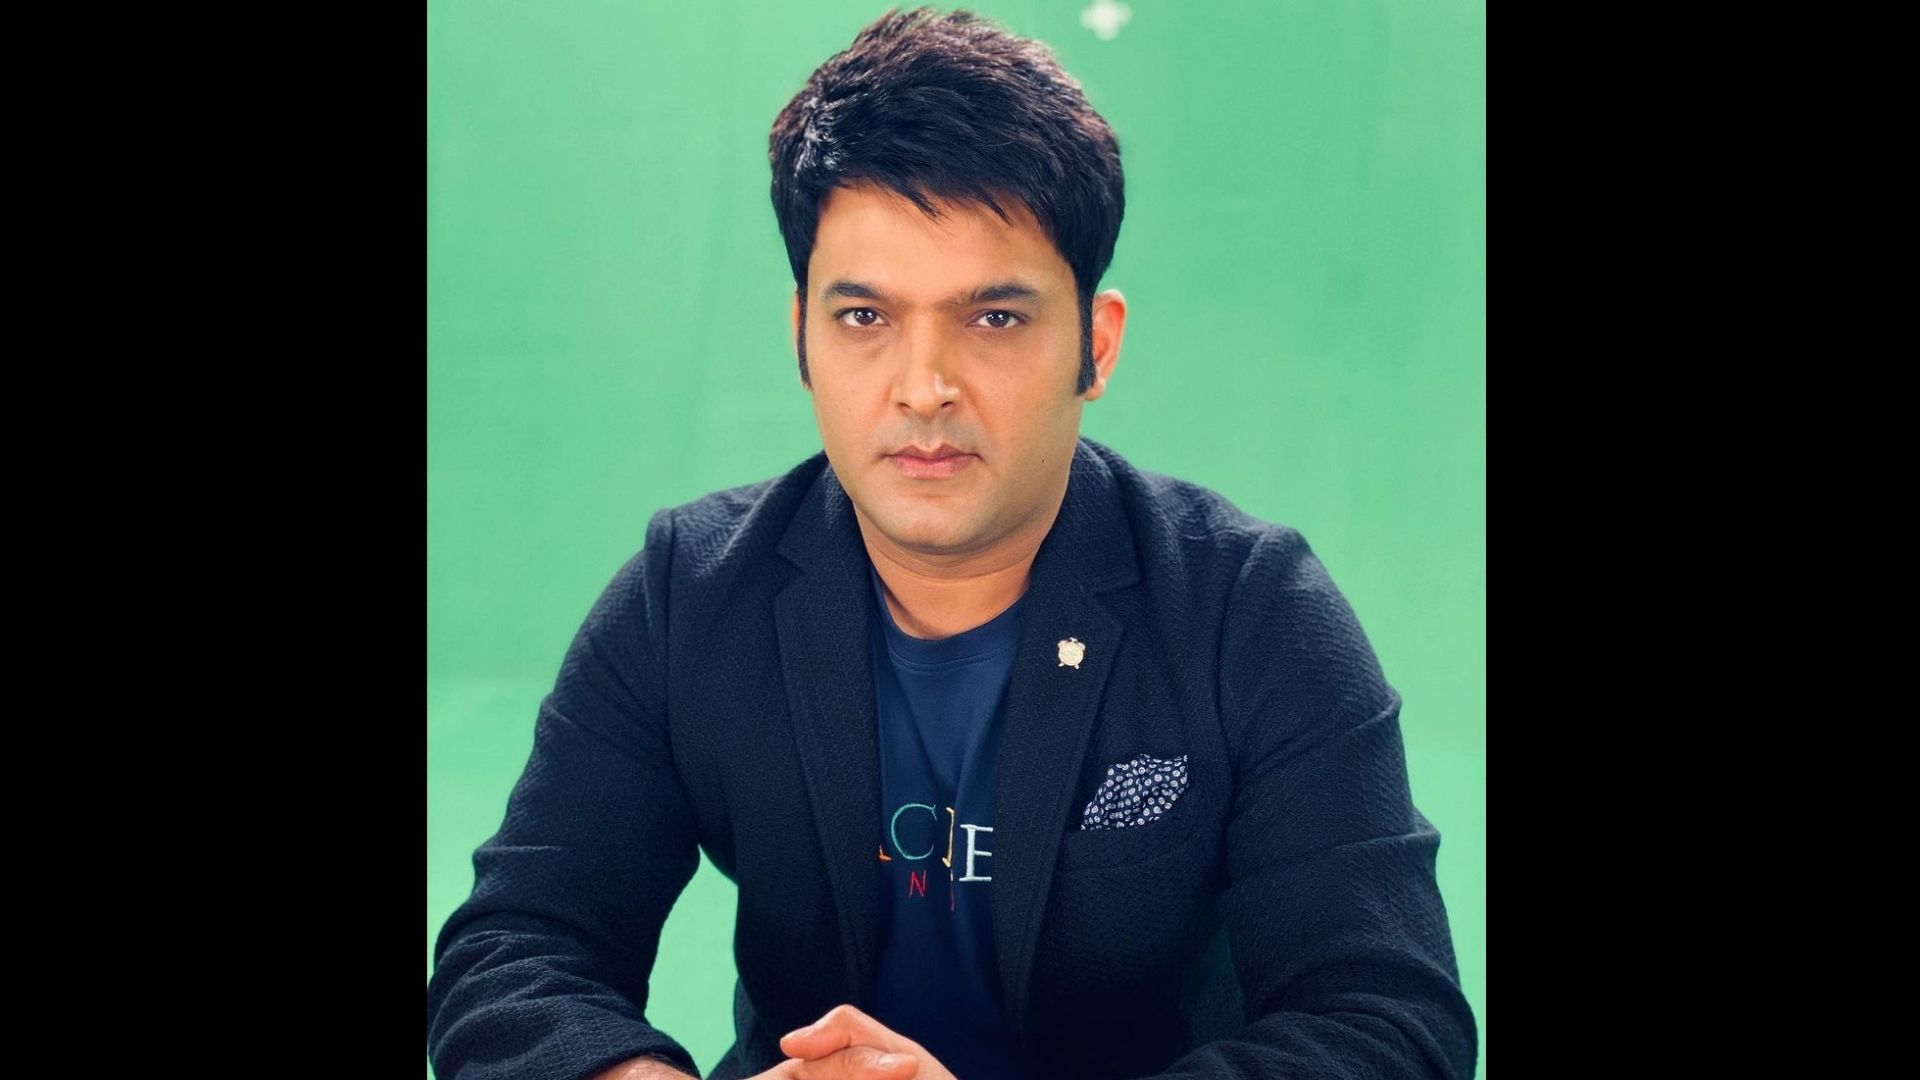 Kapil Sharma Makes Shocking Revelation On Being Called 'Mota' For Hosting Jhalak Dikhhlaa Jaa; Says, 'I Was Asked To Lose Weight'